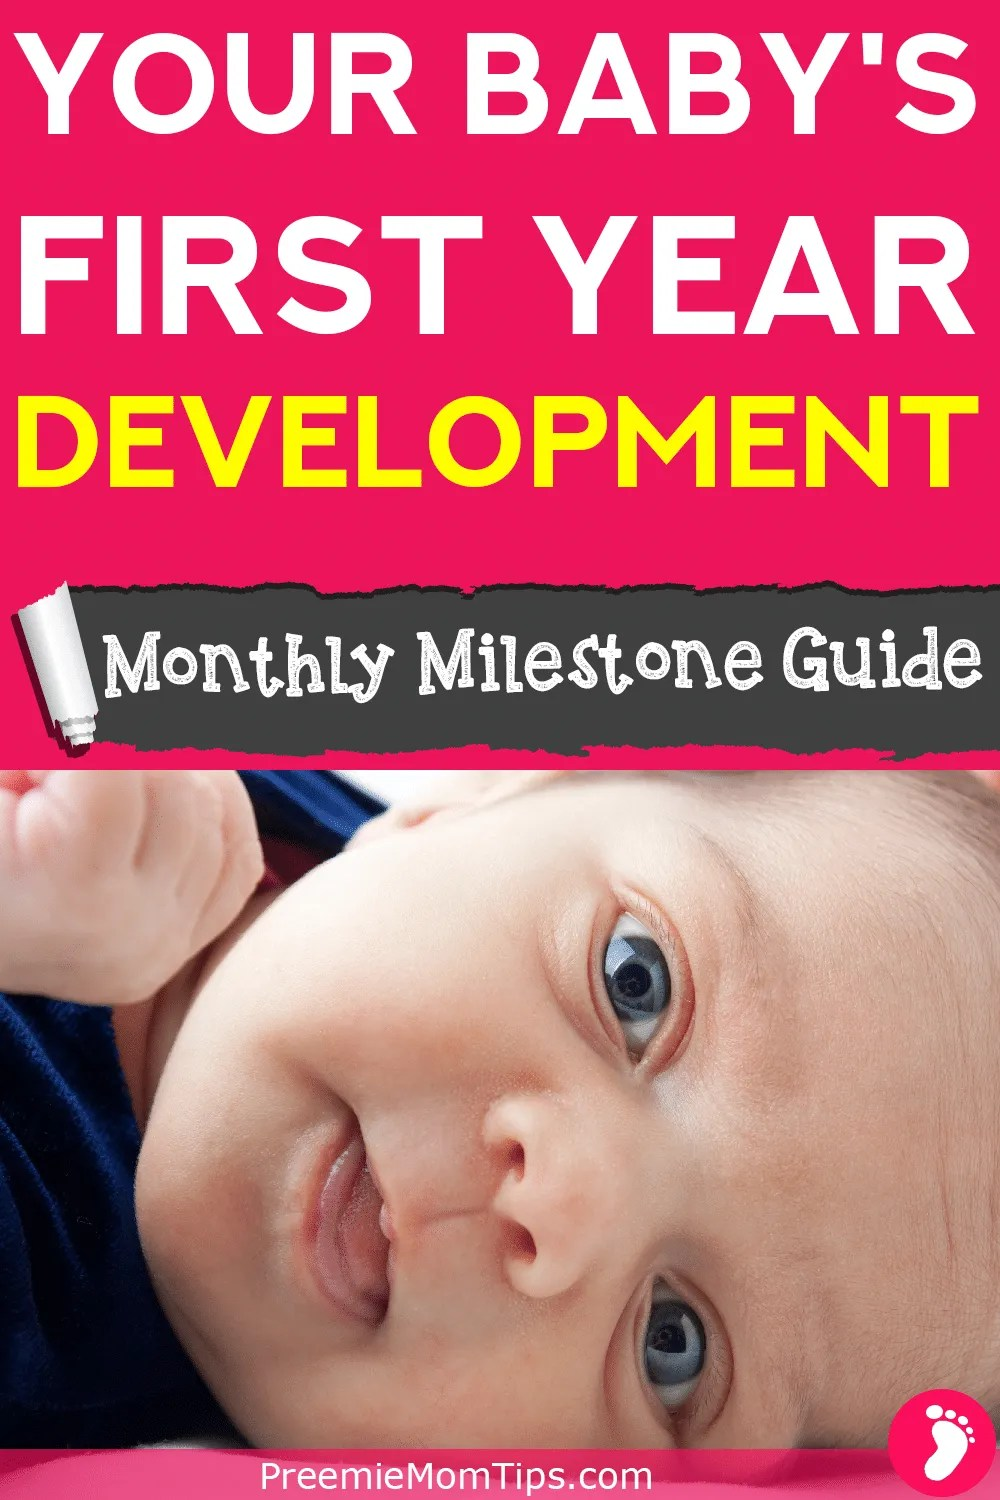 A monthly milestone tracker and development guide especially made for new parents who want to keep things simple! Track your baby's development with a free printable inside!